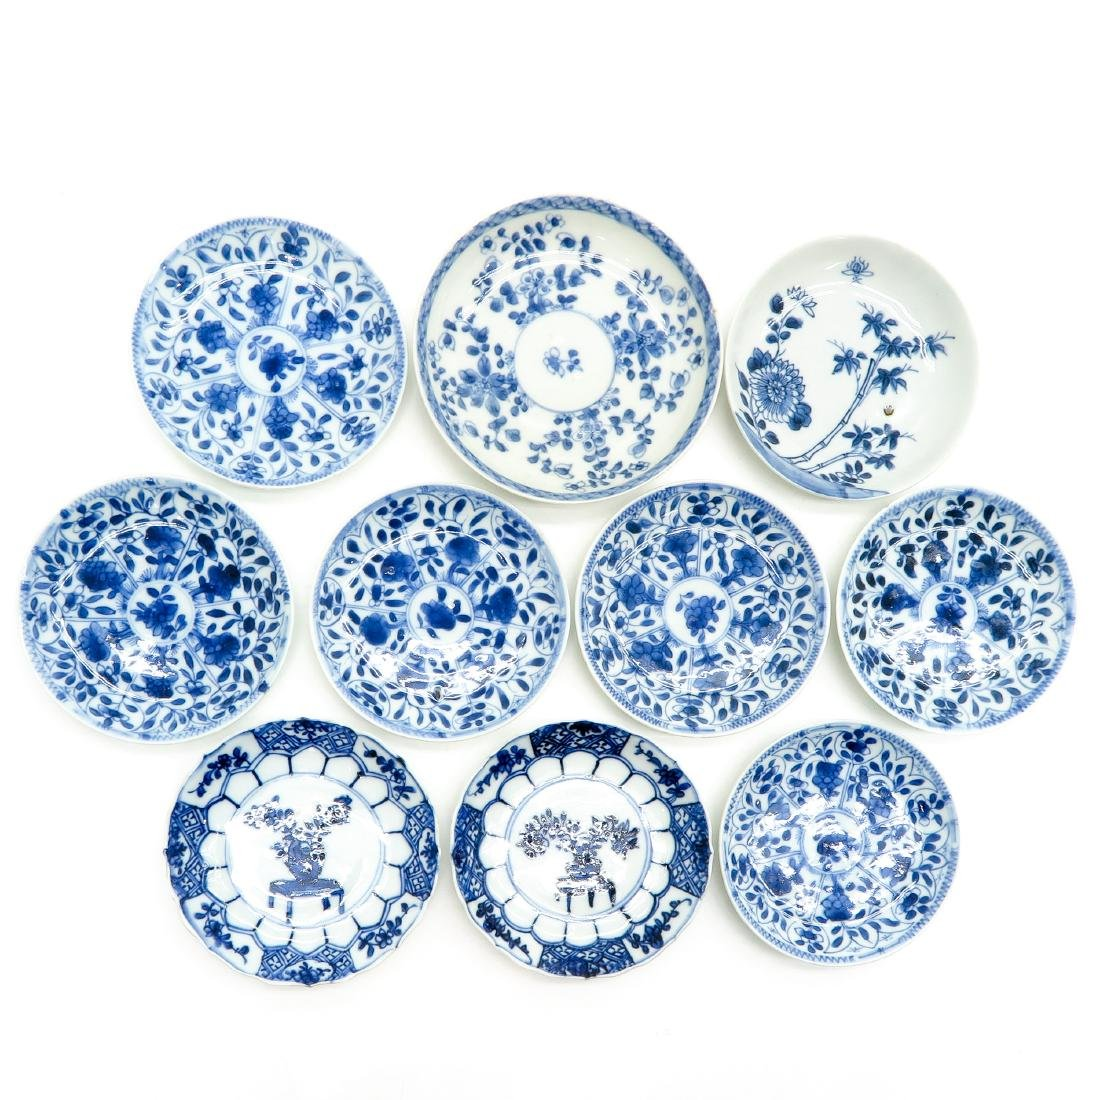 Lot of 10 Small Plates